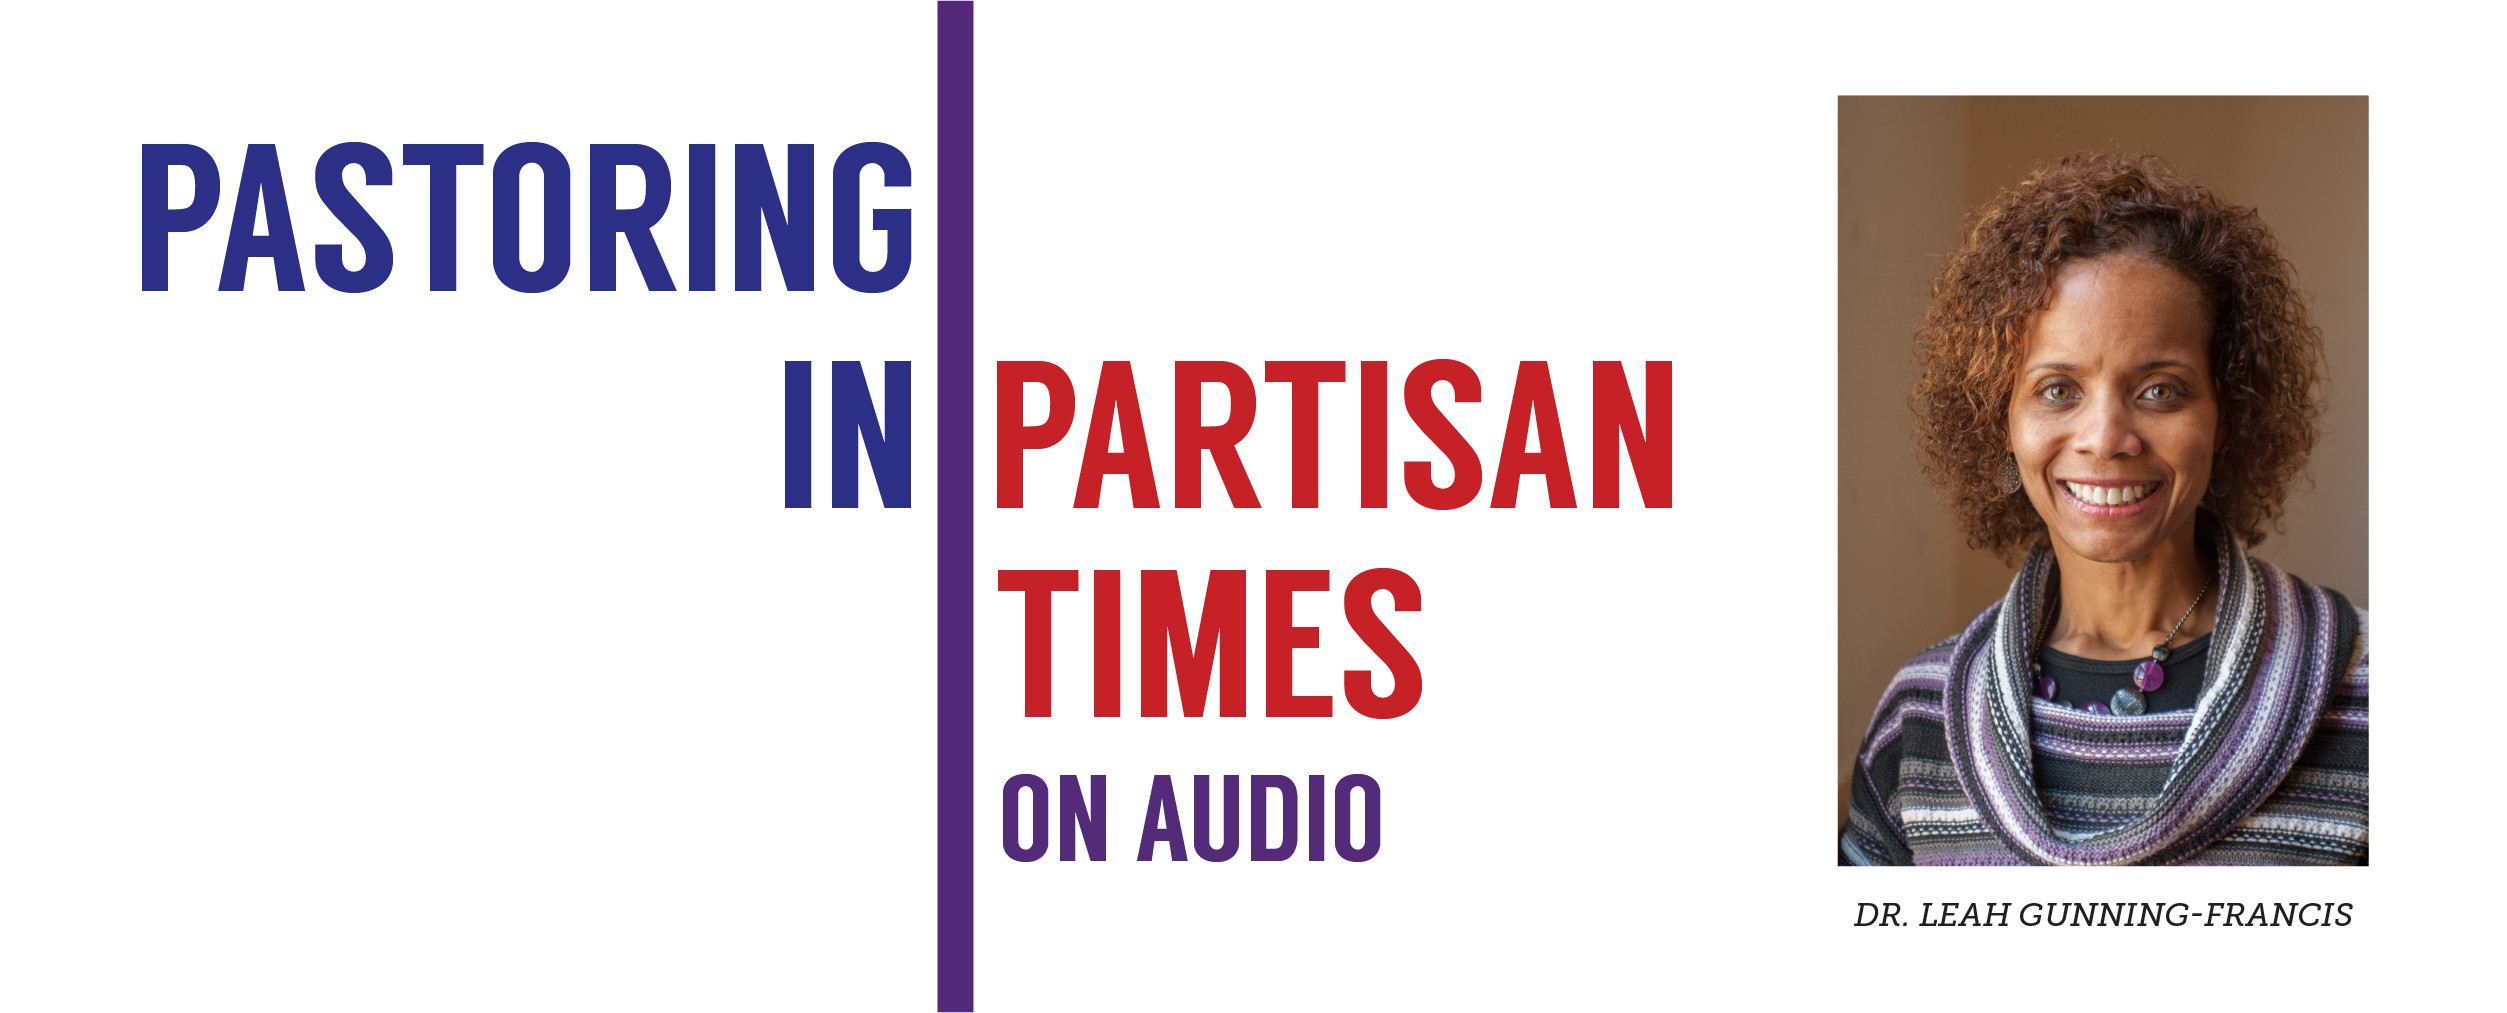 Pastoring in Partisan Times Podcast: Speaking Up and Out with Dr. Leah Gunning Francis